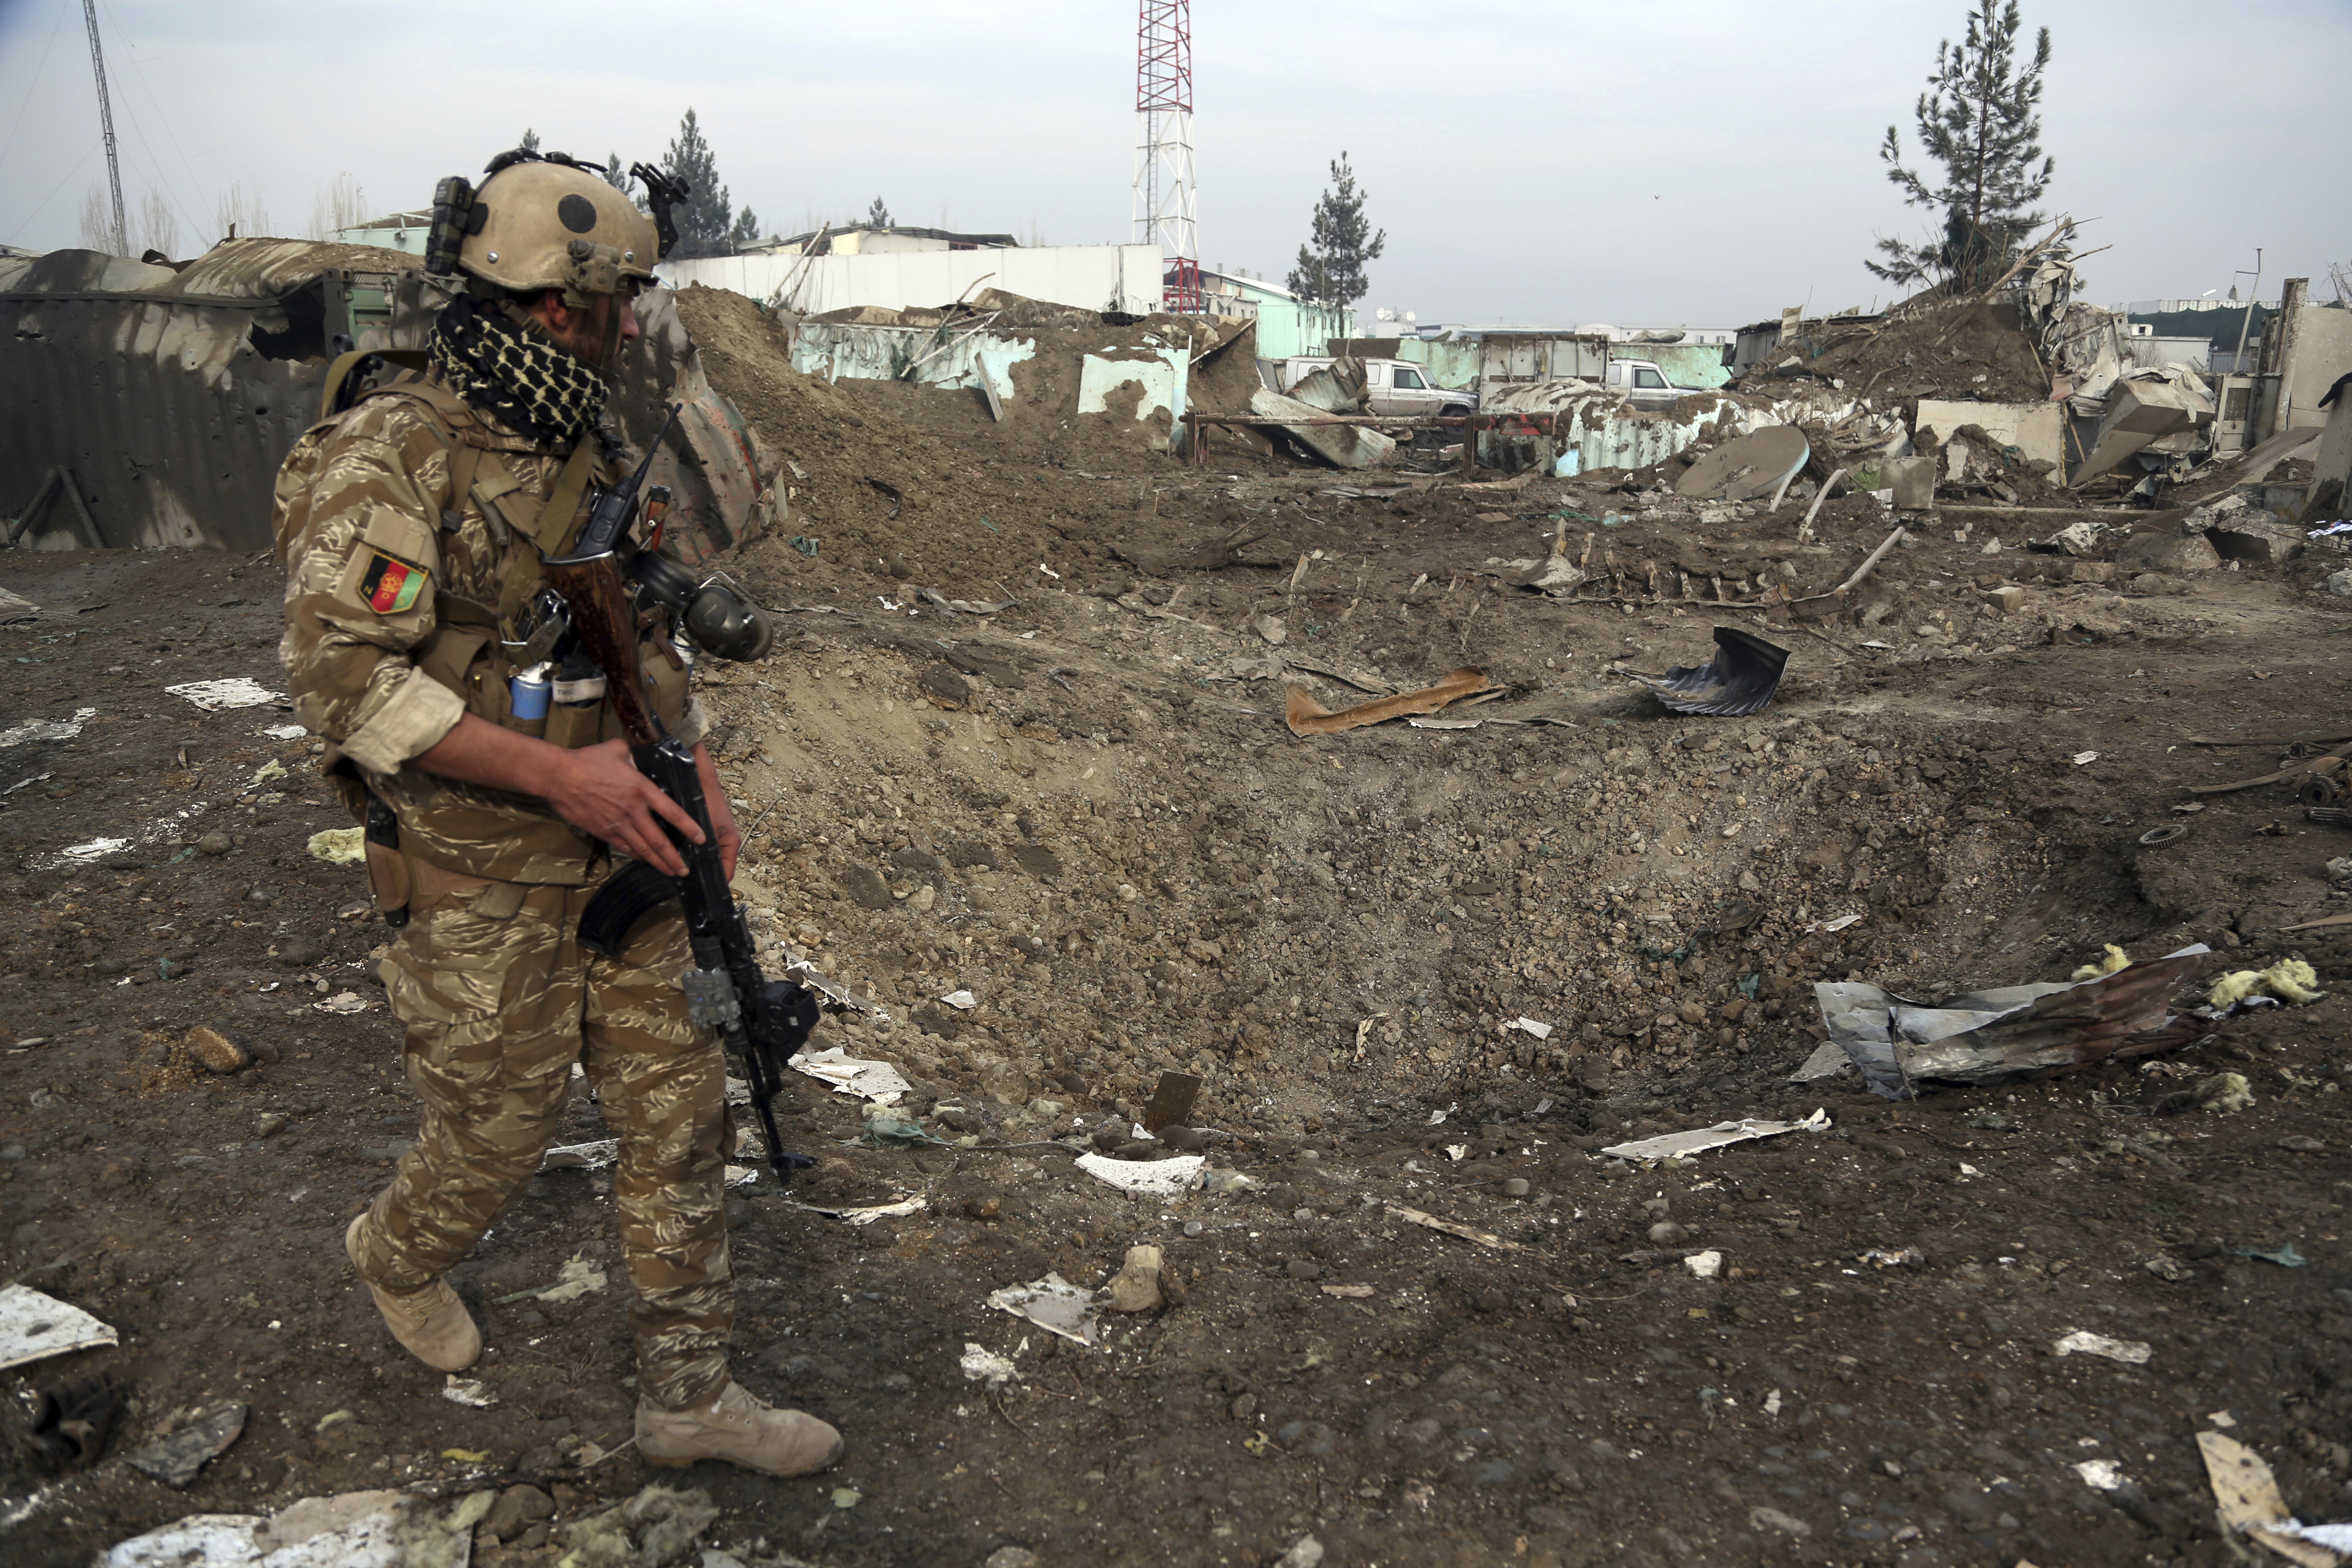 An Afghan security forces member walks next to a crater caused by a suicide bomb attack in Kabul, Afghanistan, Nov. 29, 2018.